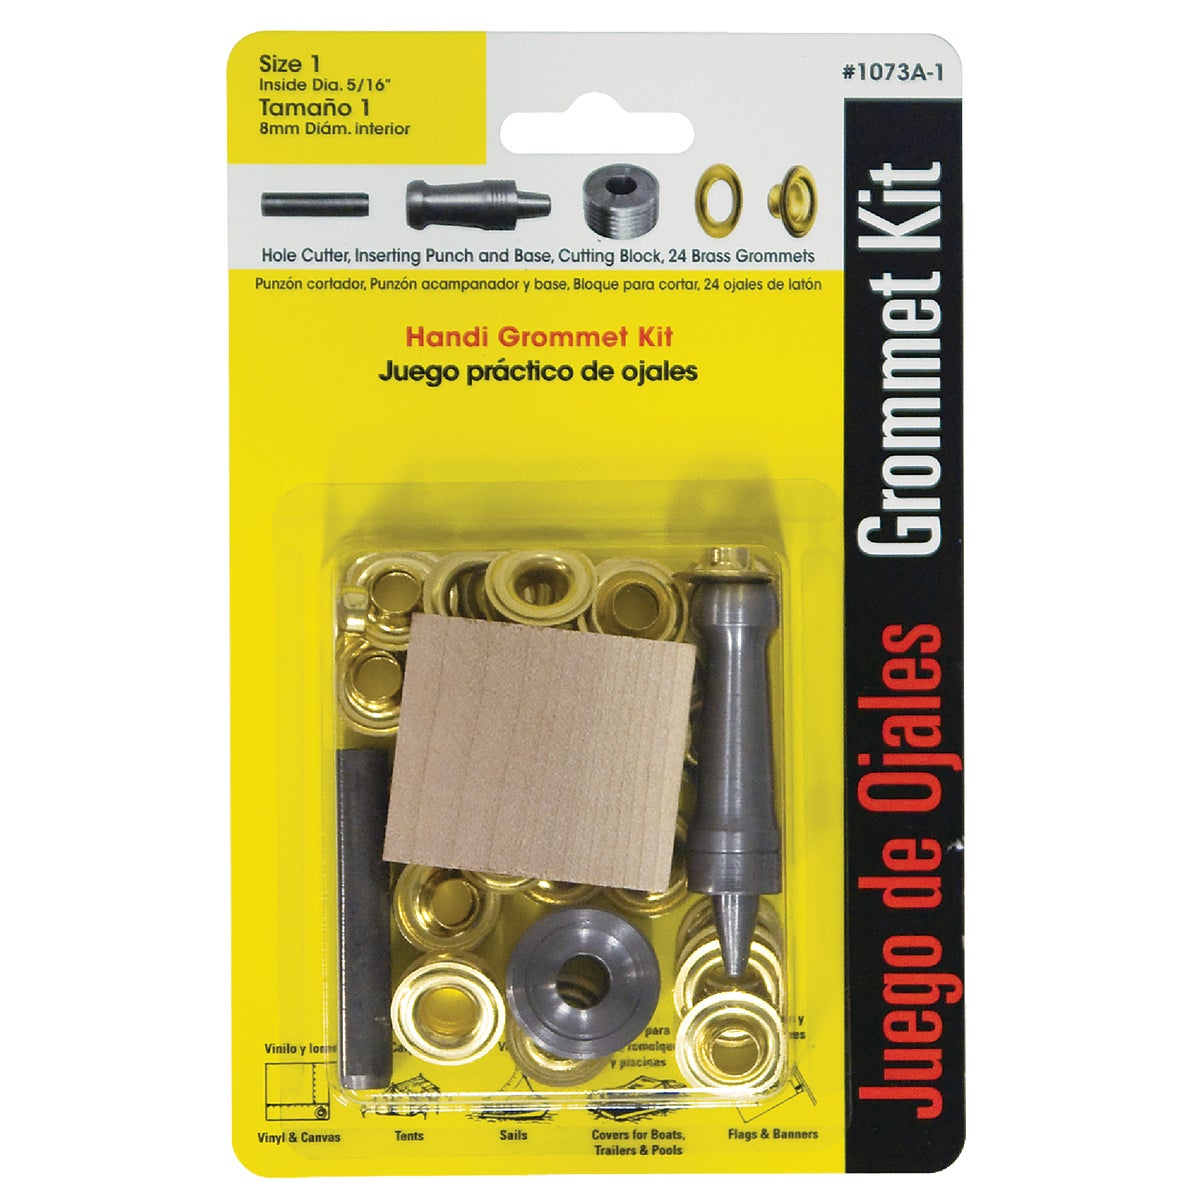 "5/16"" HANDI GROMMET KIT - 1073A-1 by Lord & Hodge Inc"